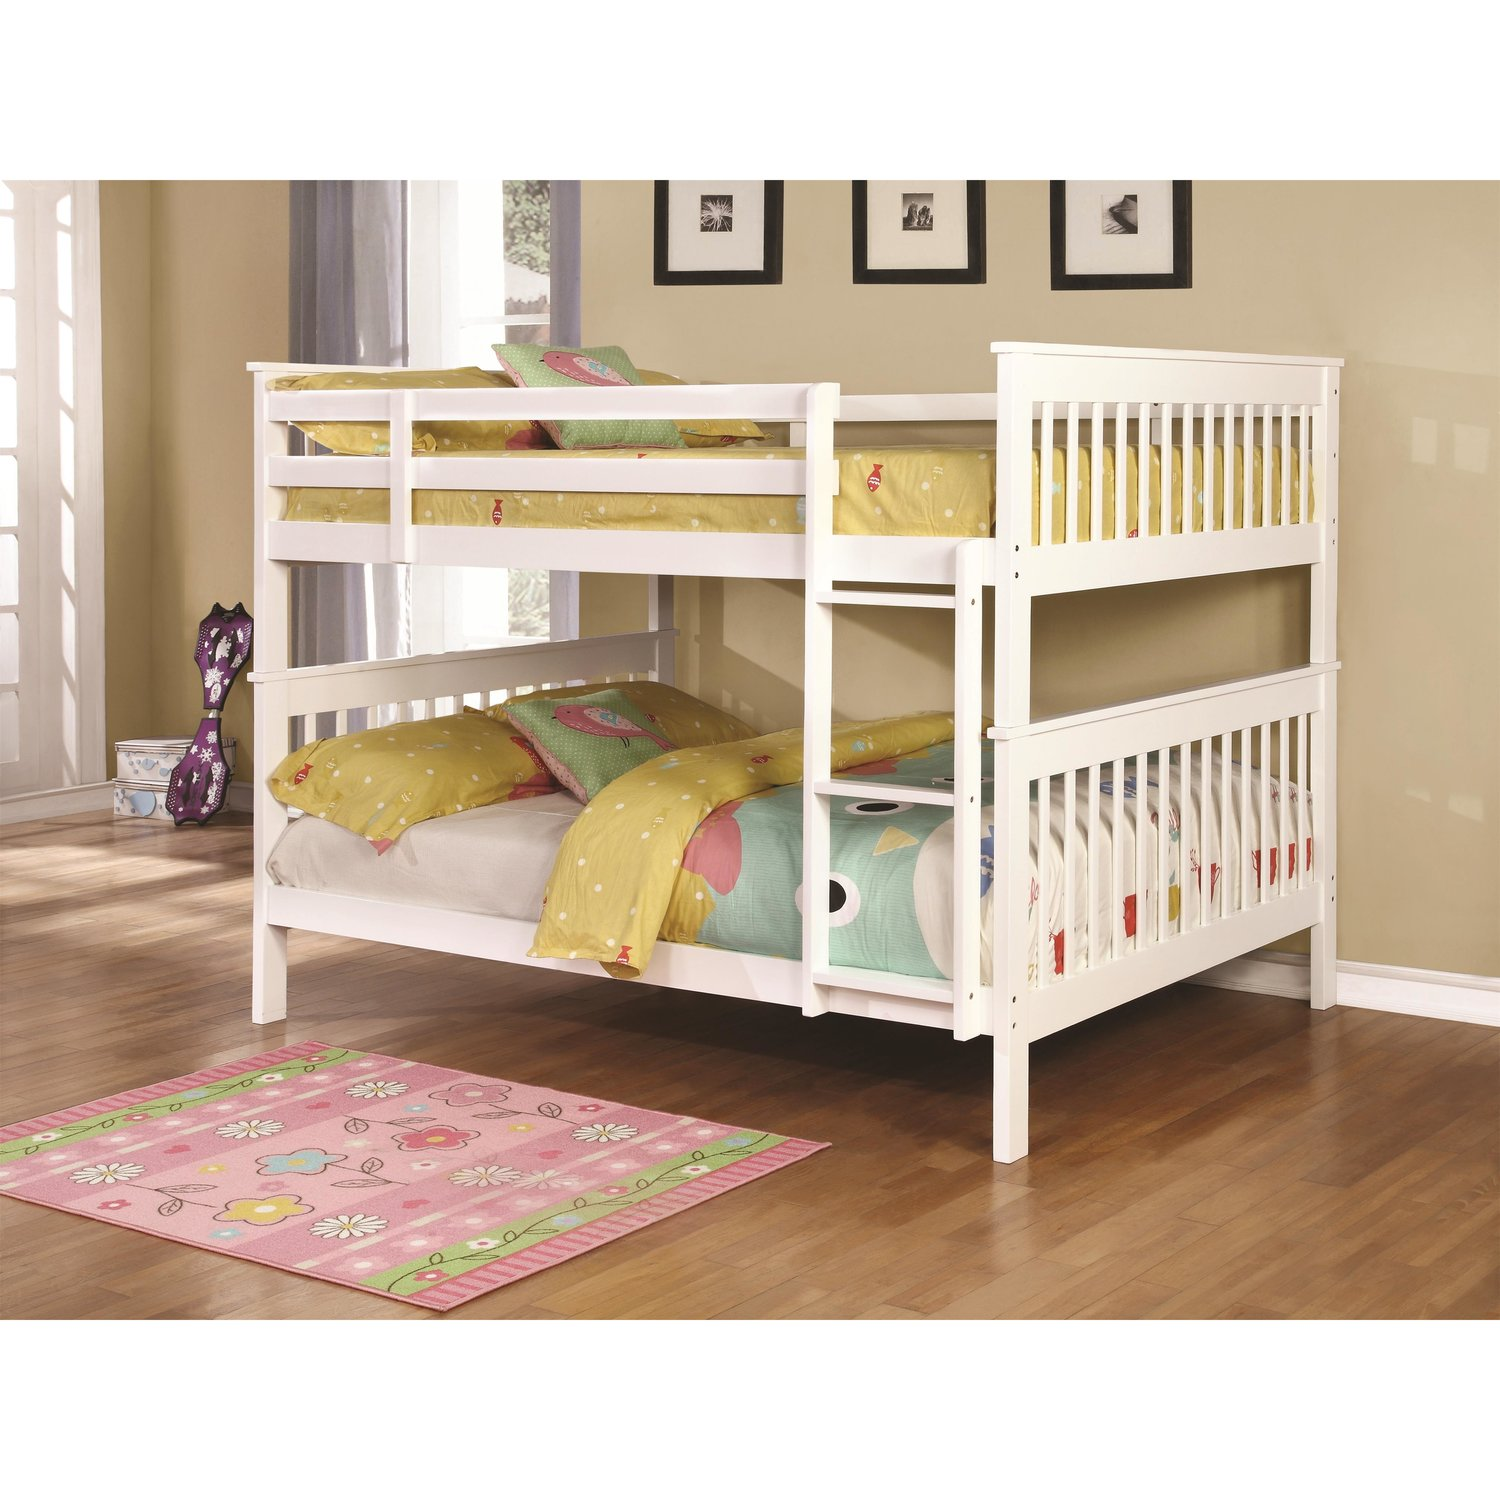 Lulu White Bunk Bed Coco Furniture Gallery Furnishing Dreams